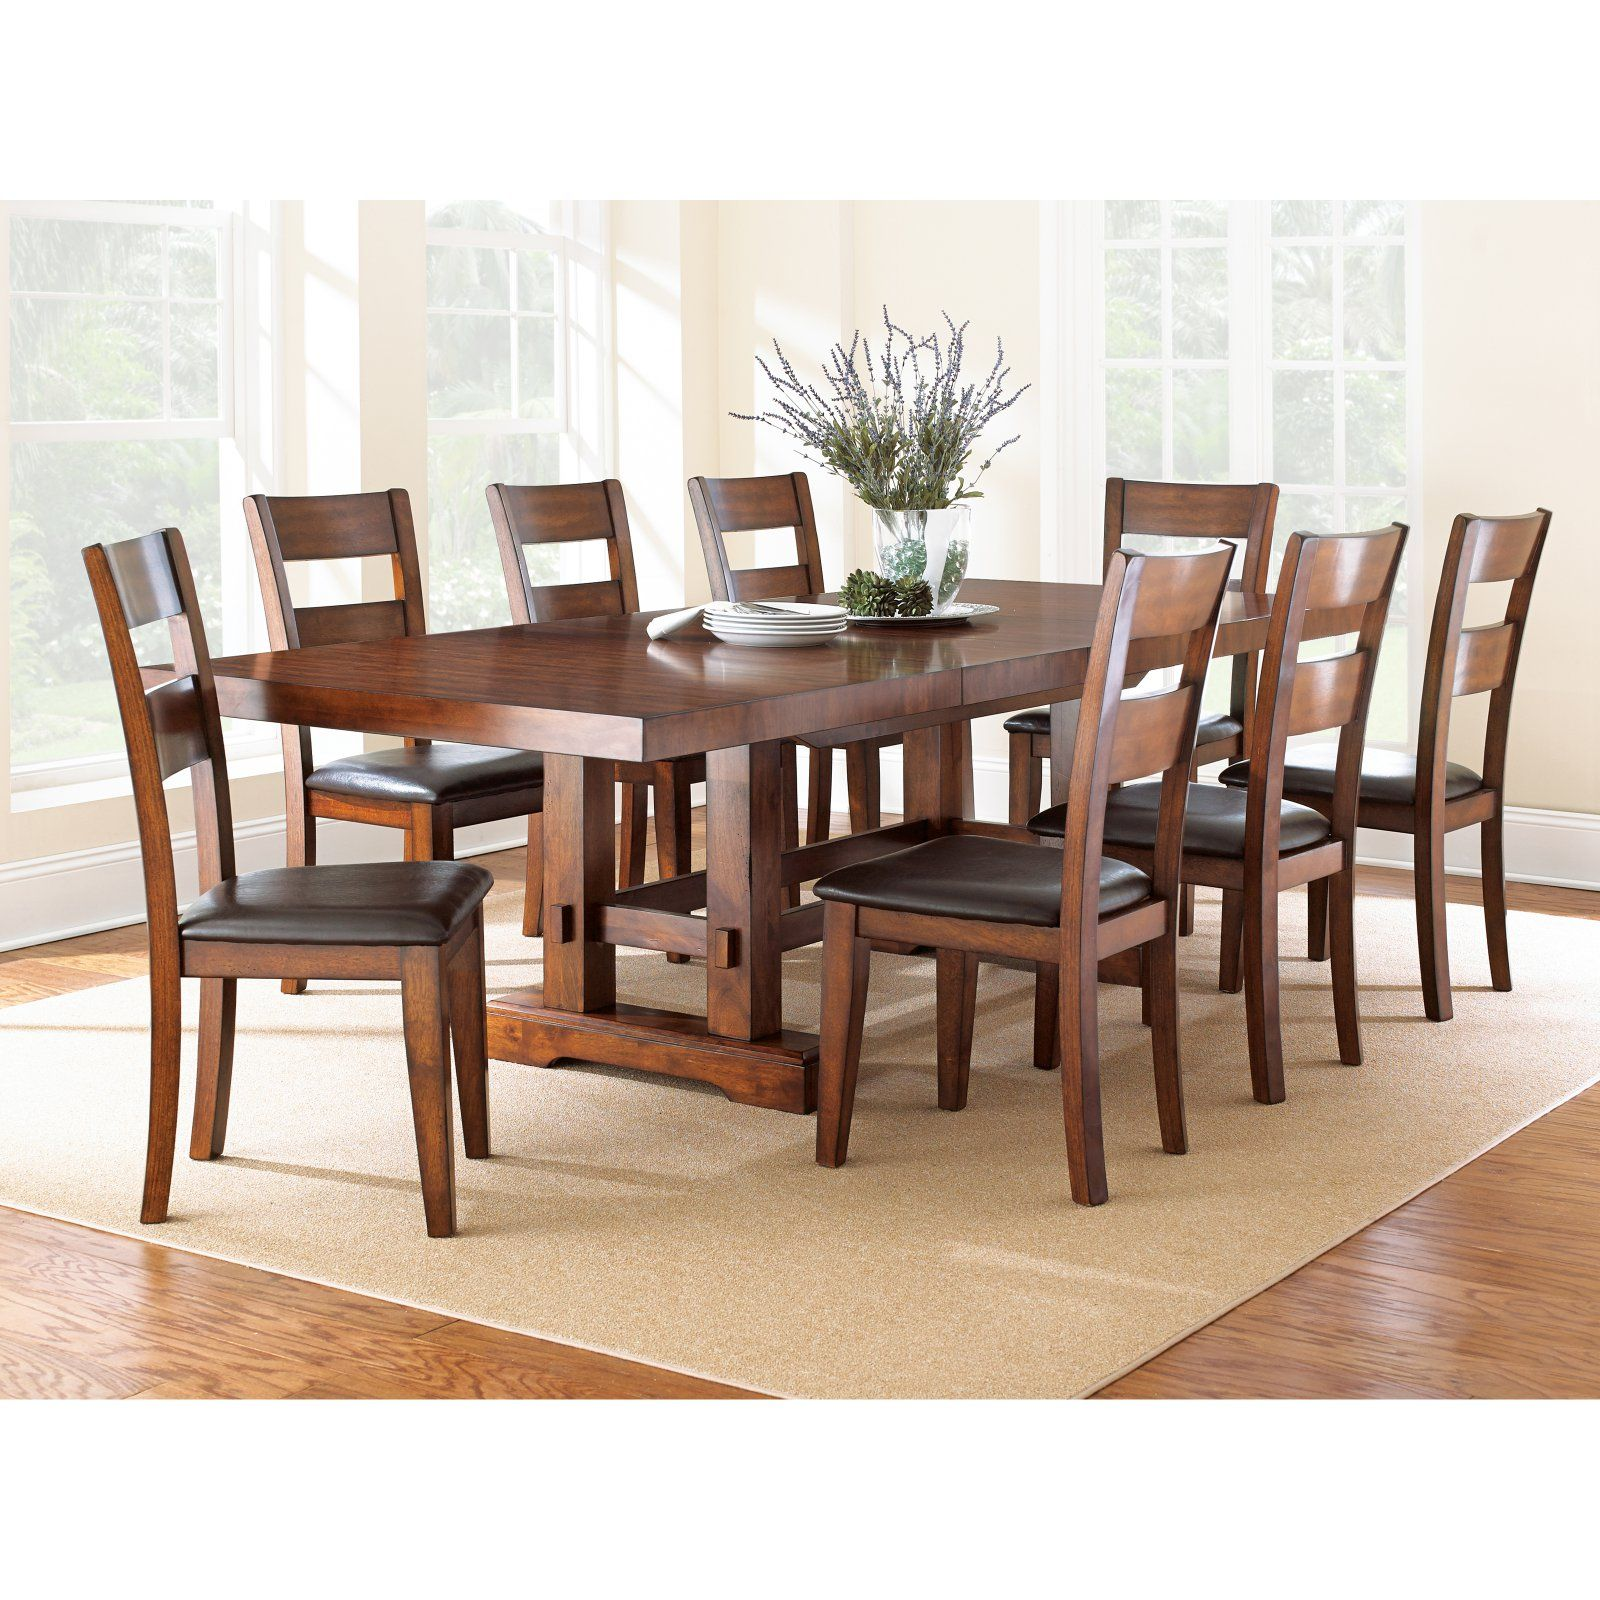 Steve Silver Zappa 9 Piece Dining Table Set Medium Cherry In